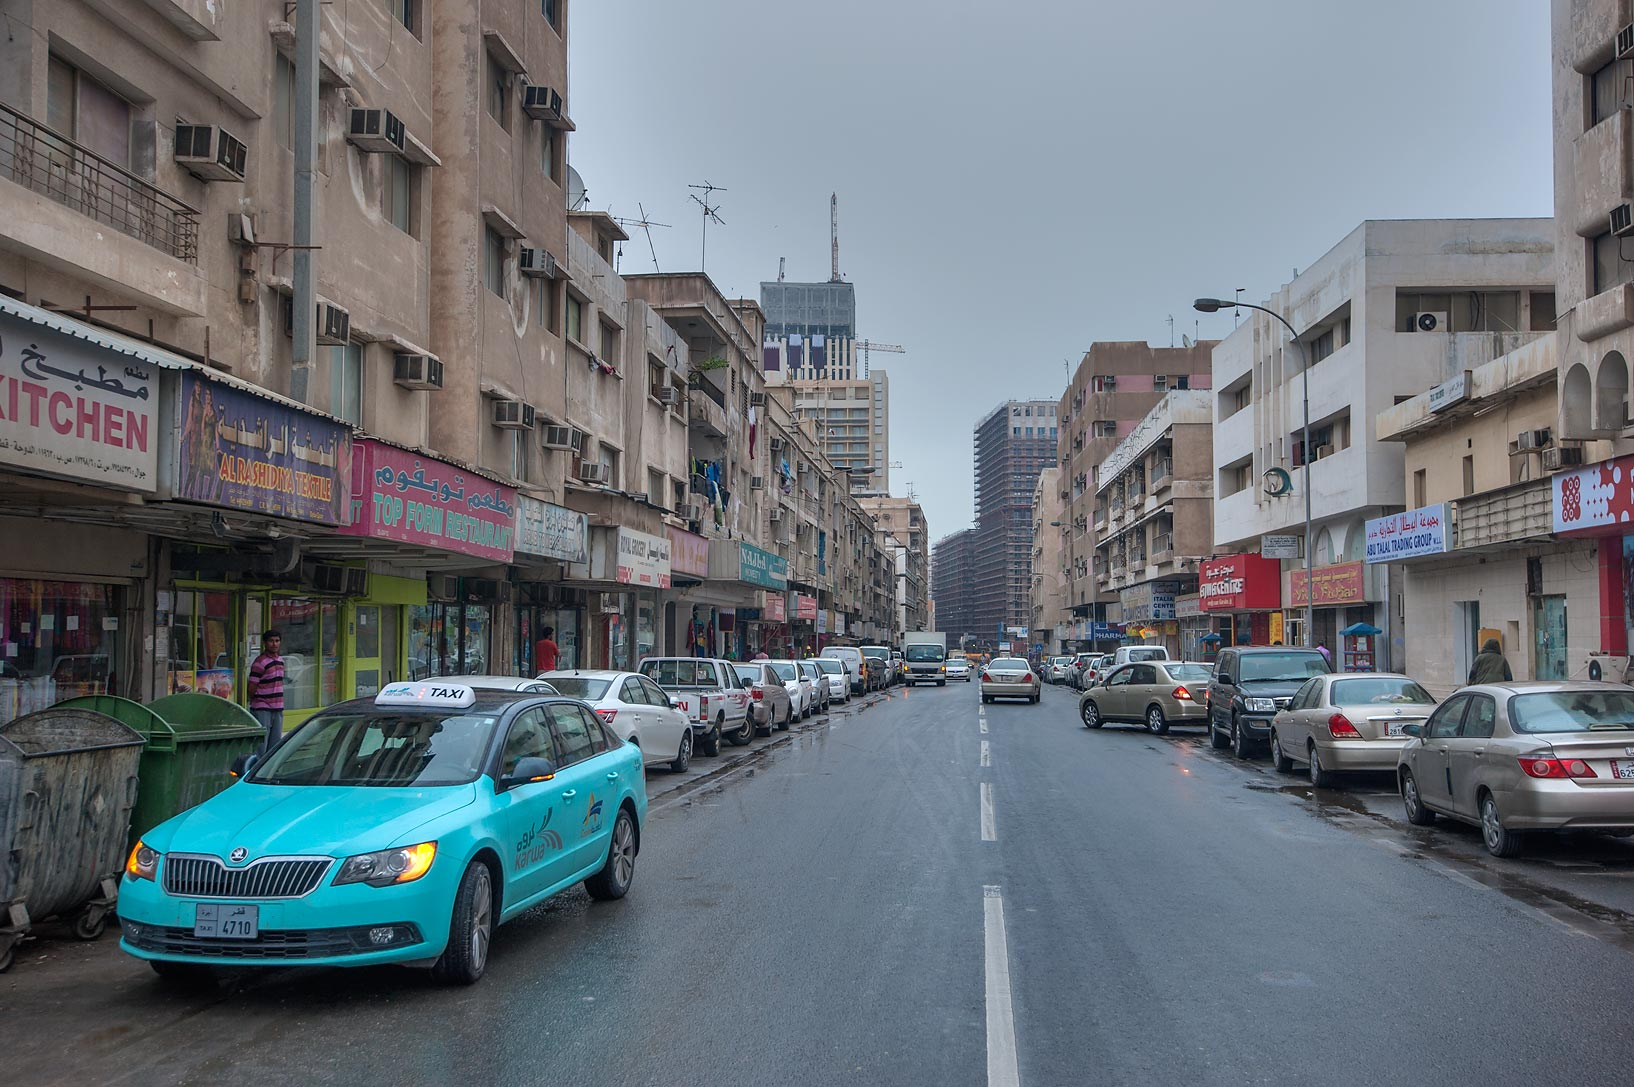 Abdullah Bin Thani St. in Musheirib neighborhood. Doha, Qatar